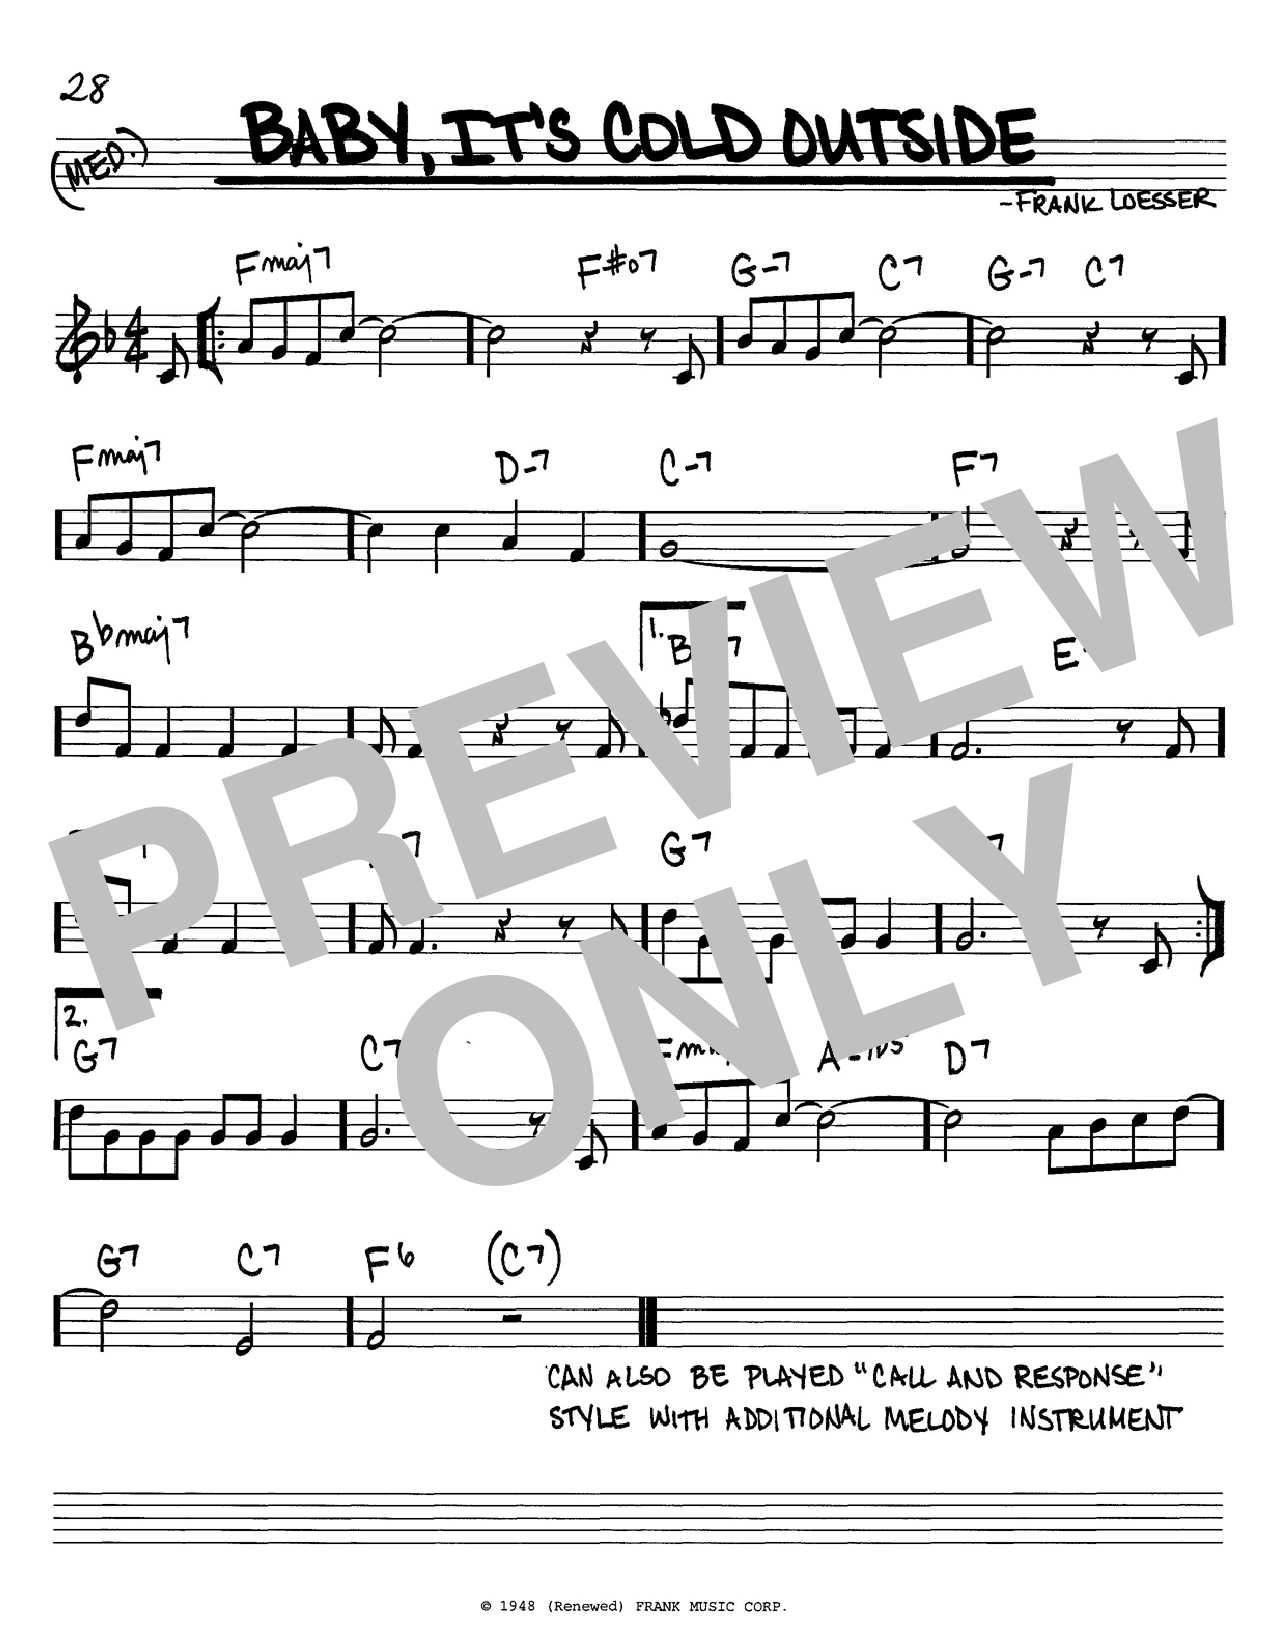 Download Frank Loesser 'Baby, It's Cold Outside (jazz version)' Digital Sheet Music Notes & Chords and start playing in minutes